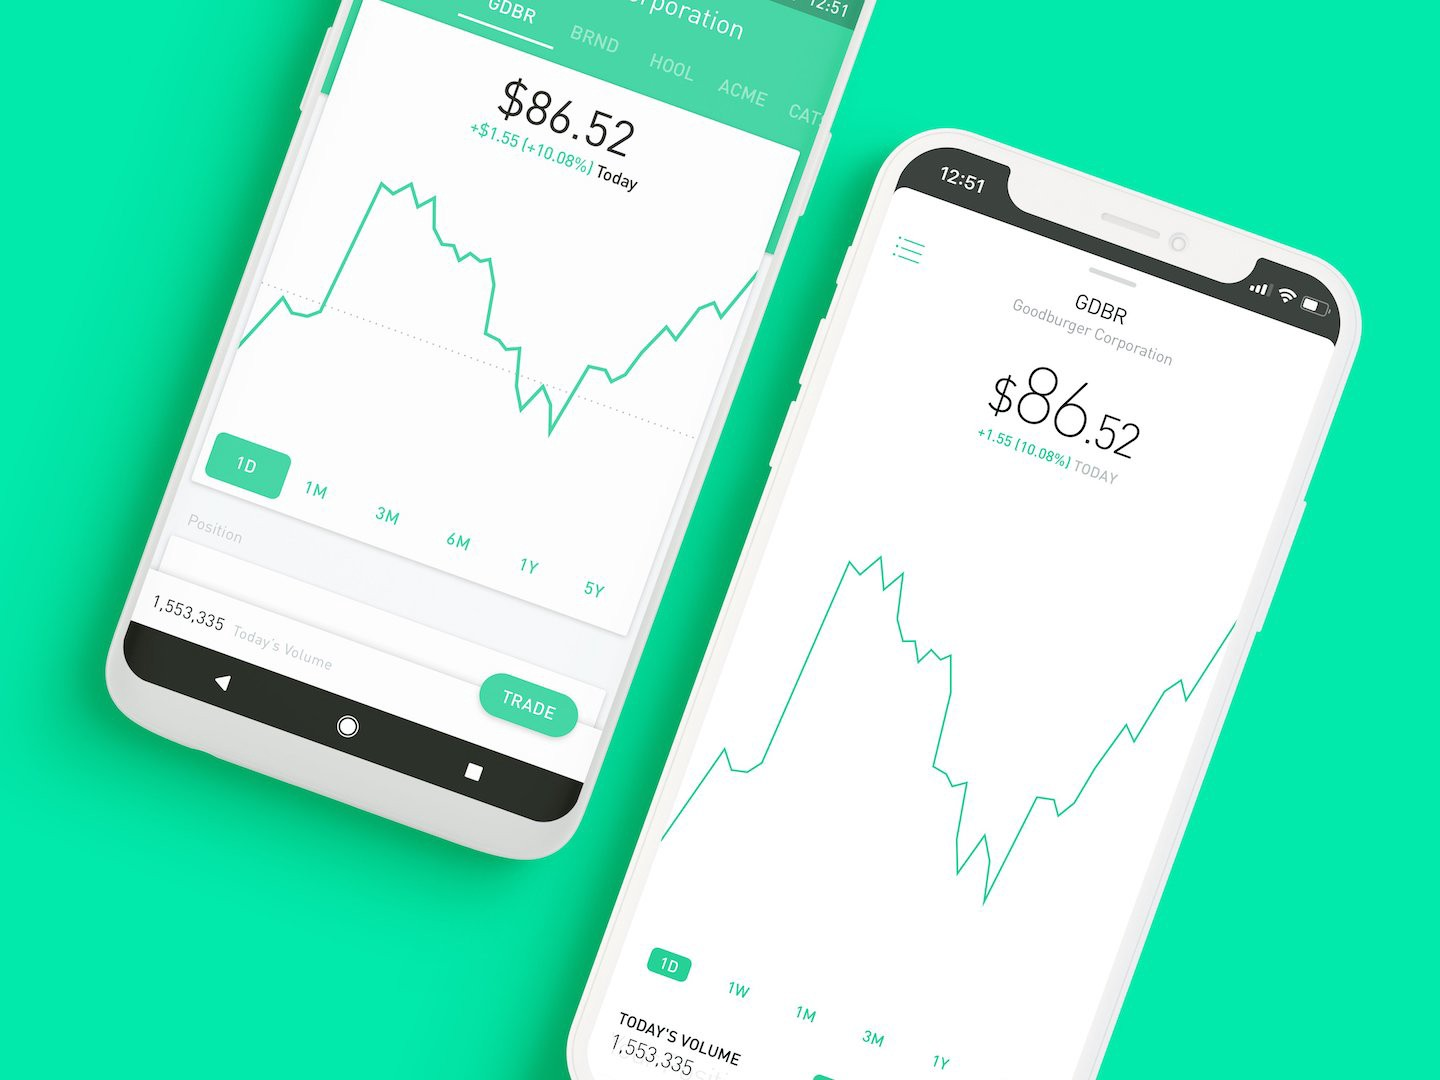 Robinhood Investing Pros And Cons